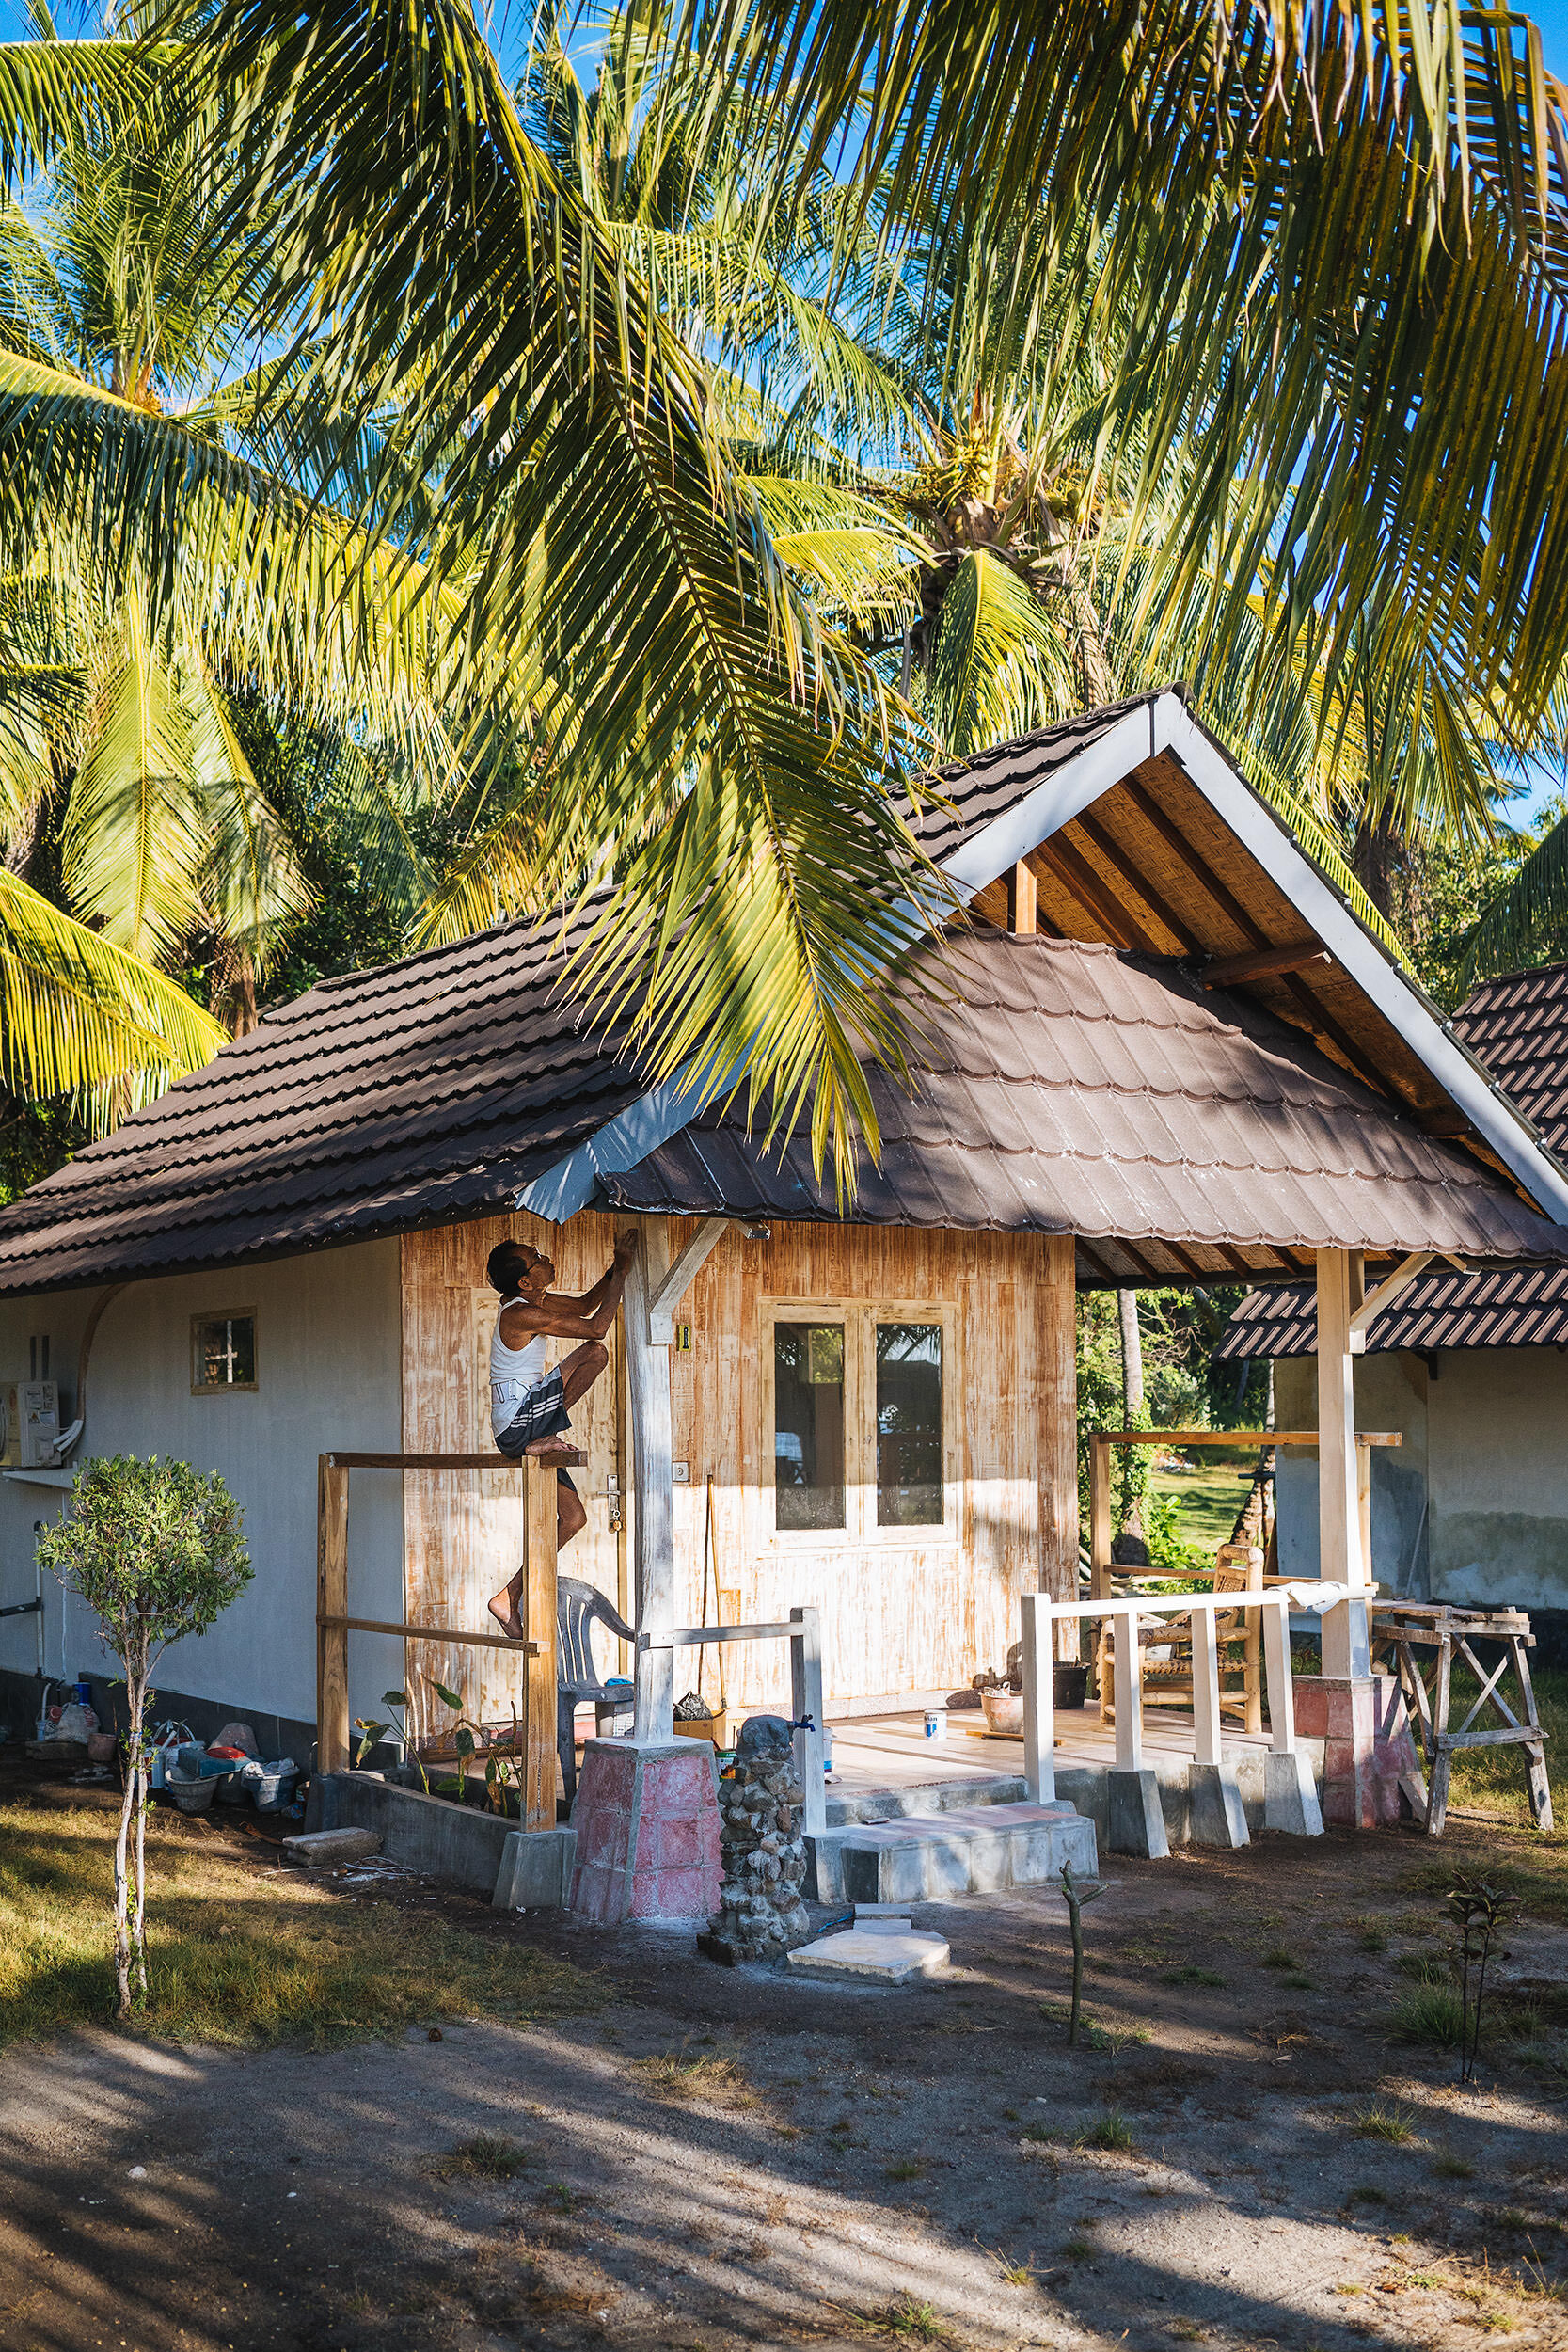 05-travel-indonesia-gili-island-air-sunrise-hut.jpg